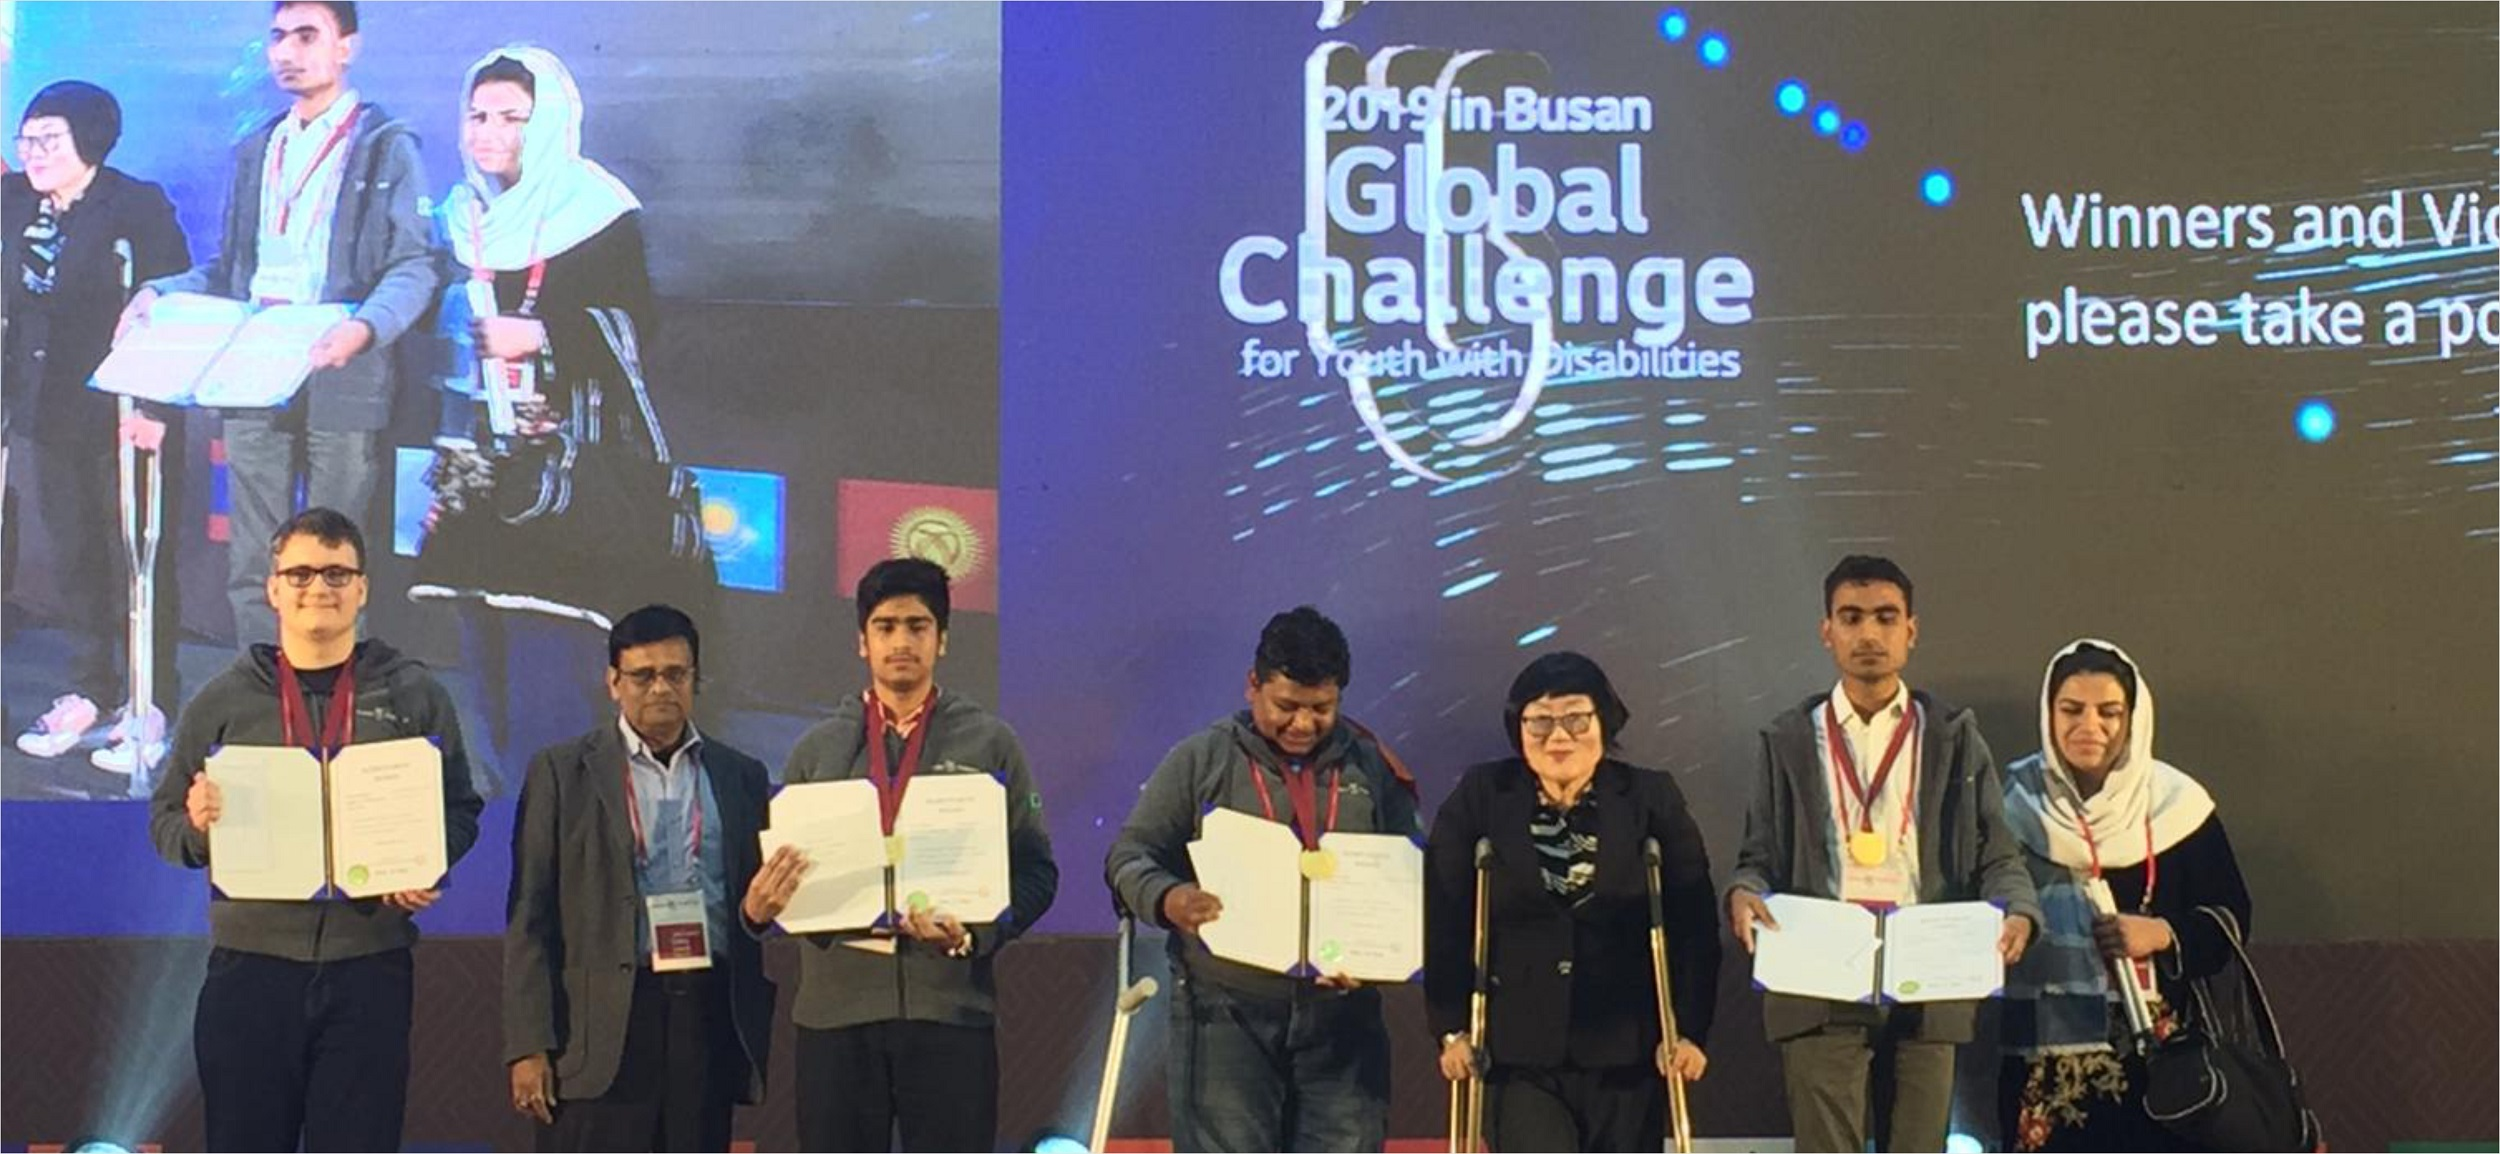 Empowering youth with disabilities show their talent globally